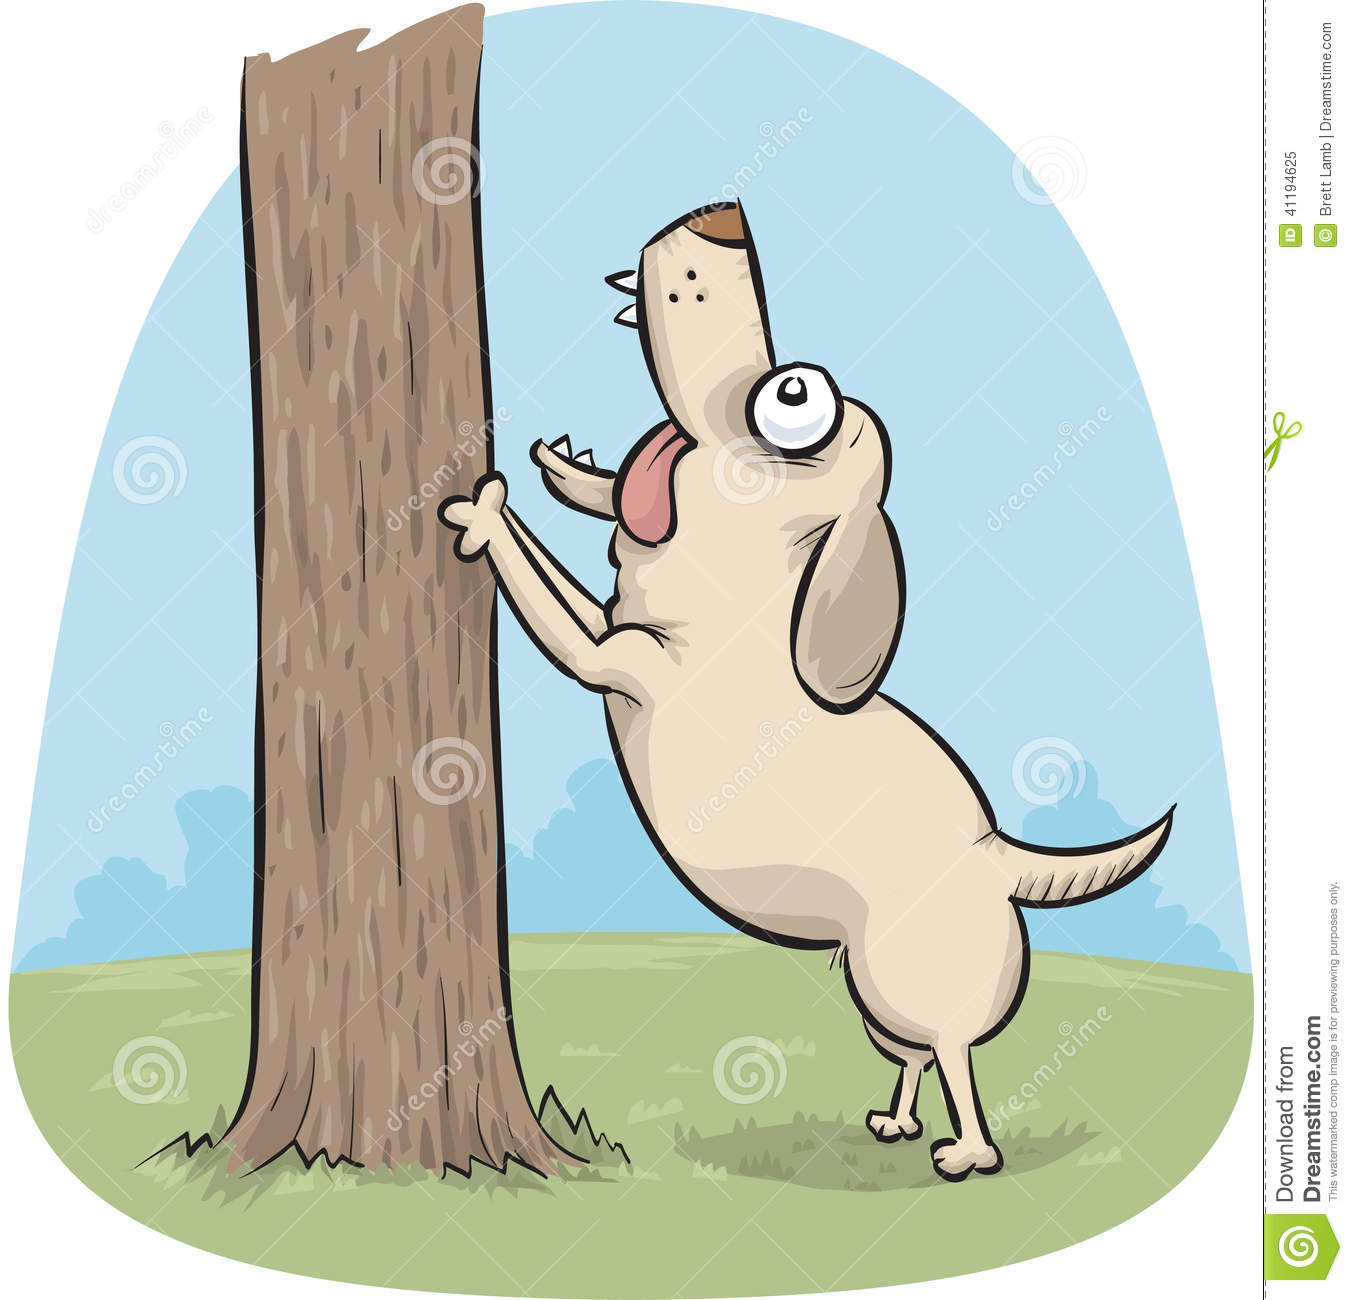 free clipart of dog barking - photo #42